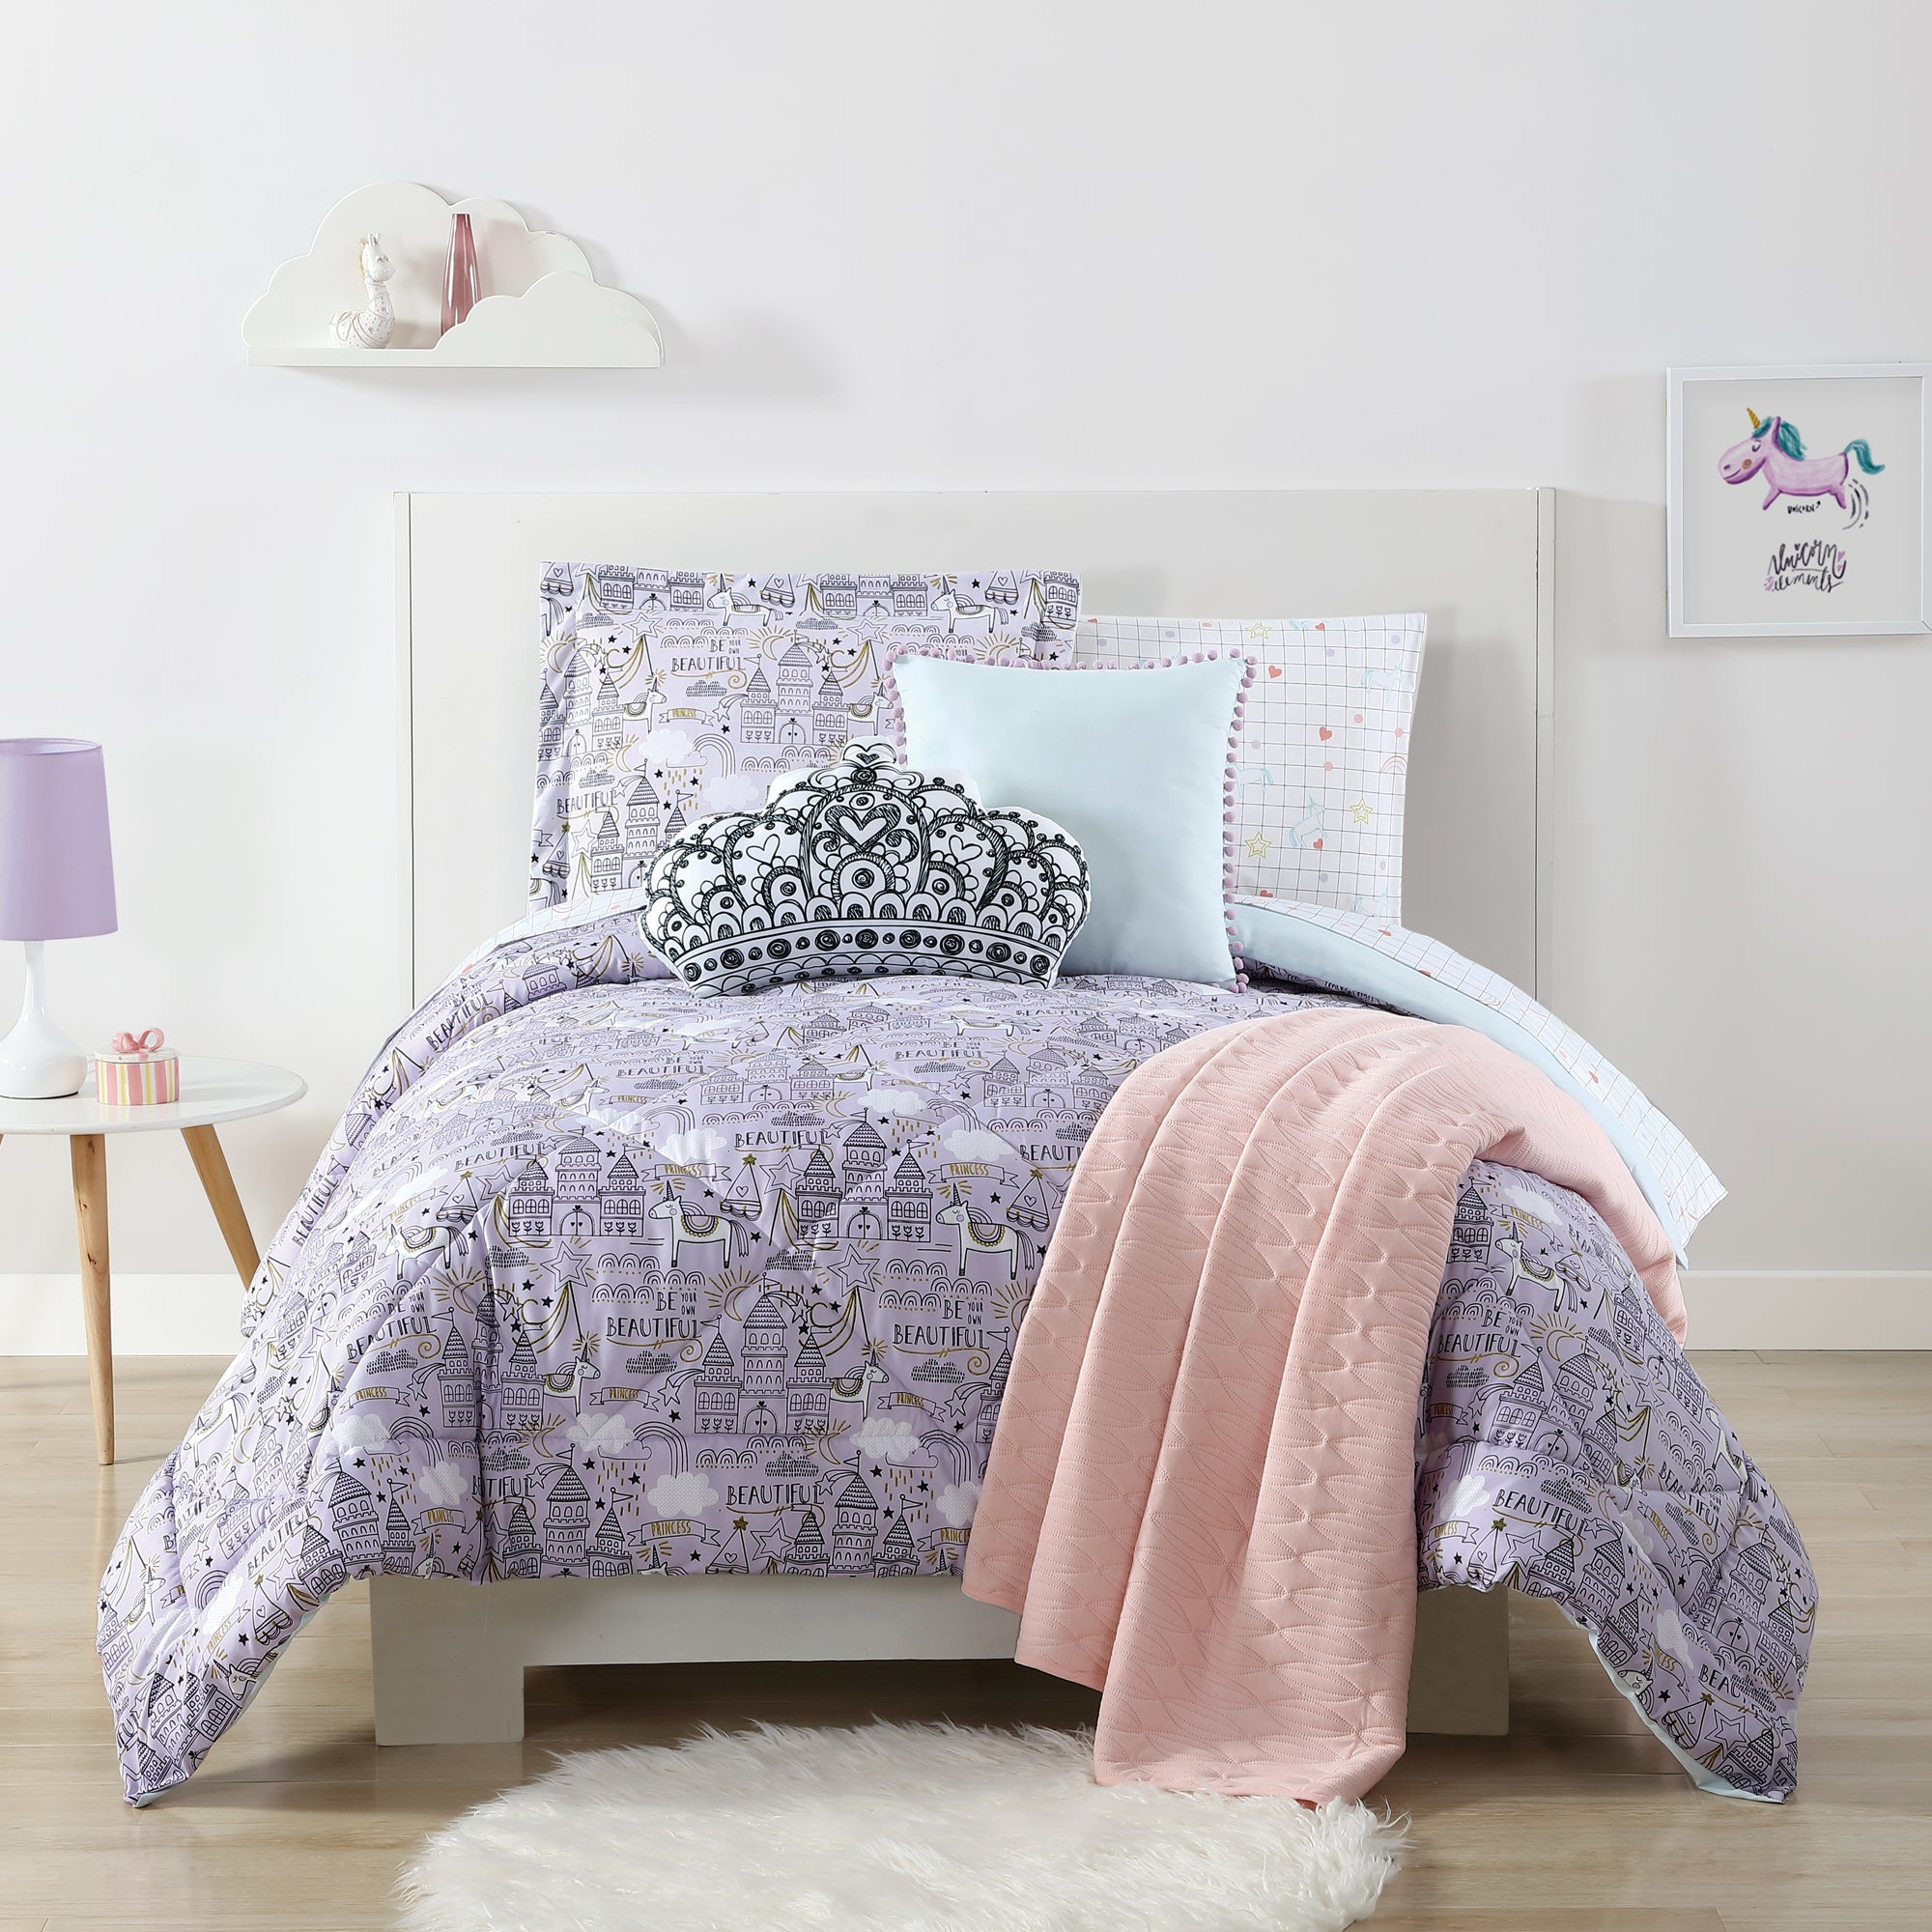 girl bedding pictures kids crib bed twin com buythebutchercover toddler frightening inspirations unicorn